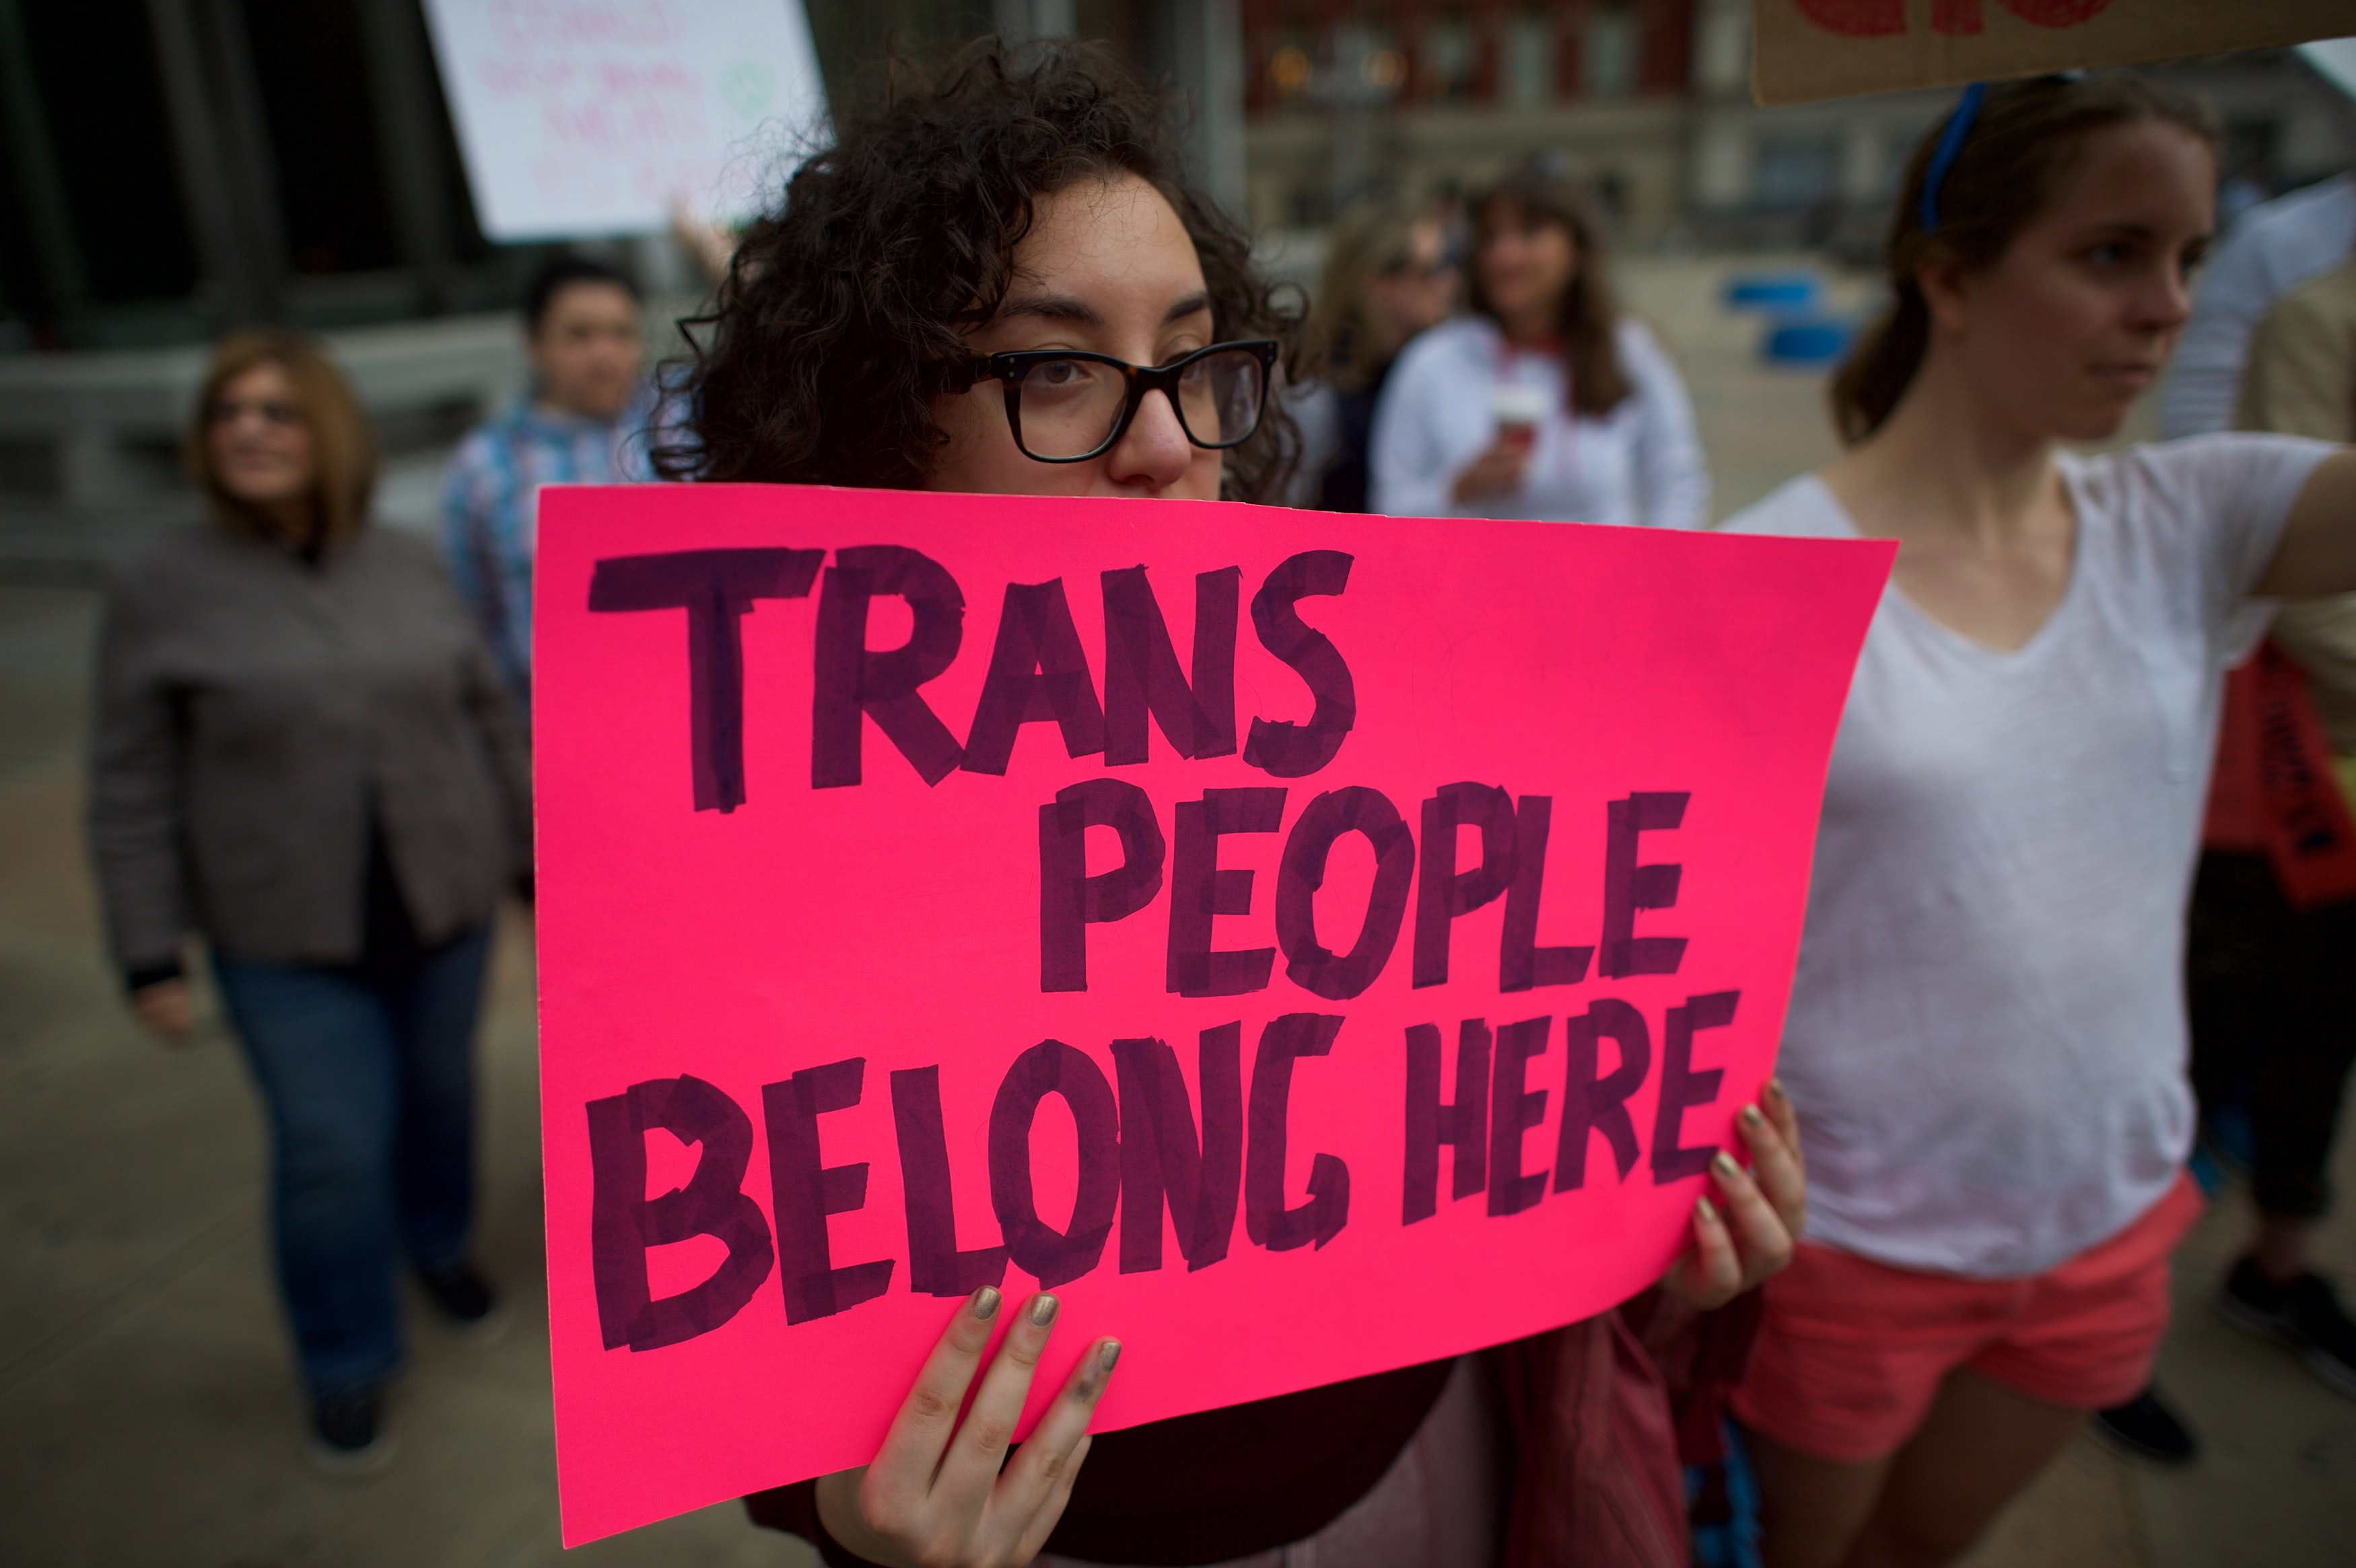 Pa. school district sued for allowing transgender student to use locker room